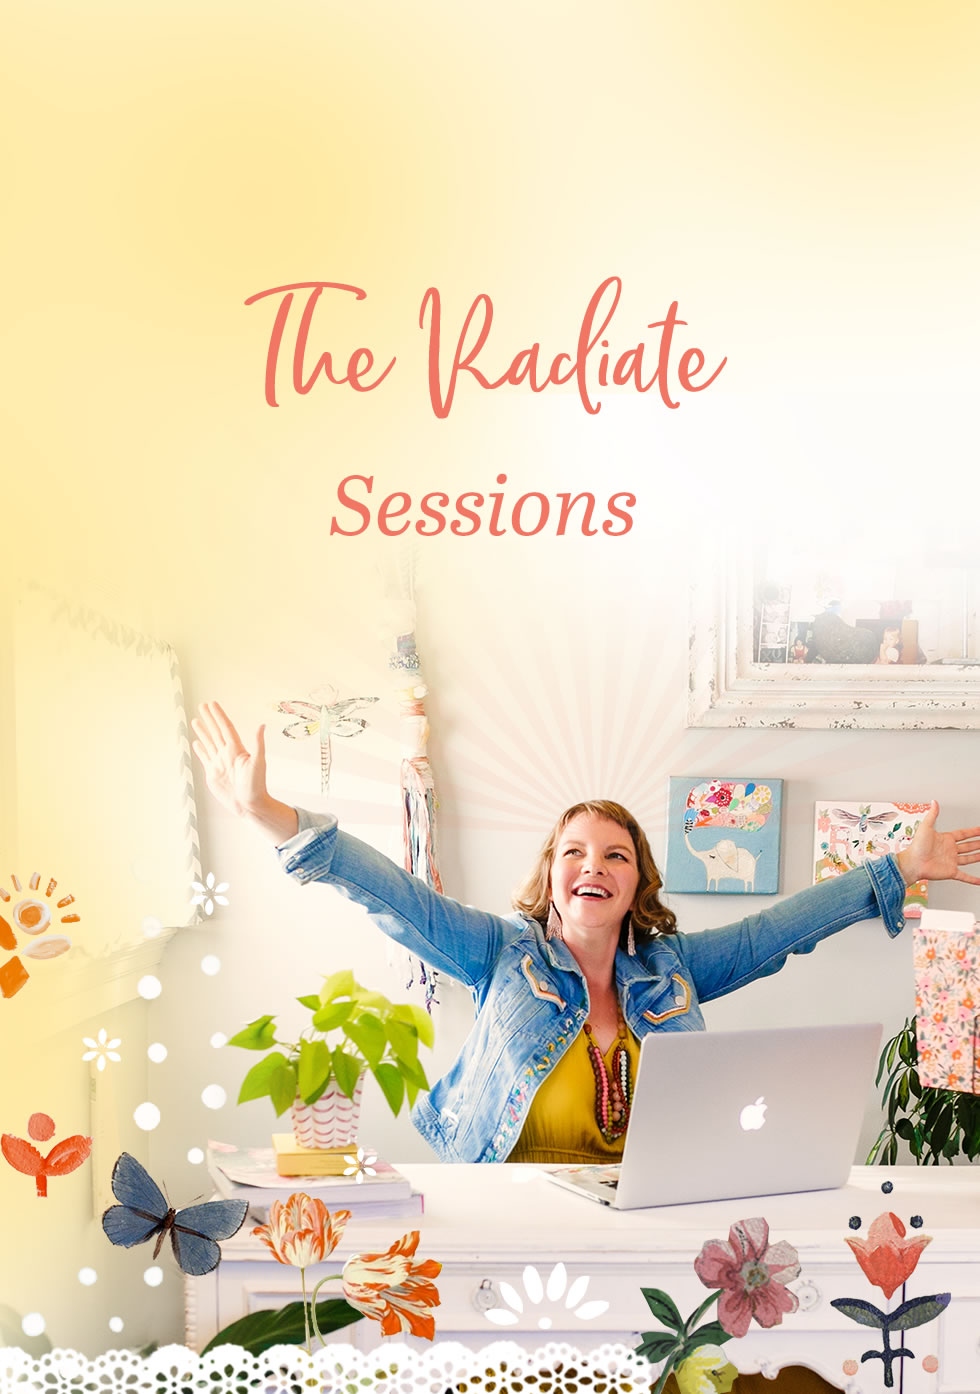 The Radiate Sessions